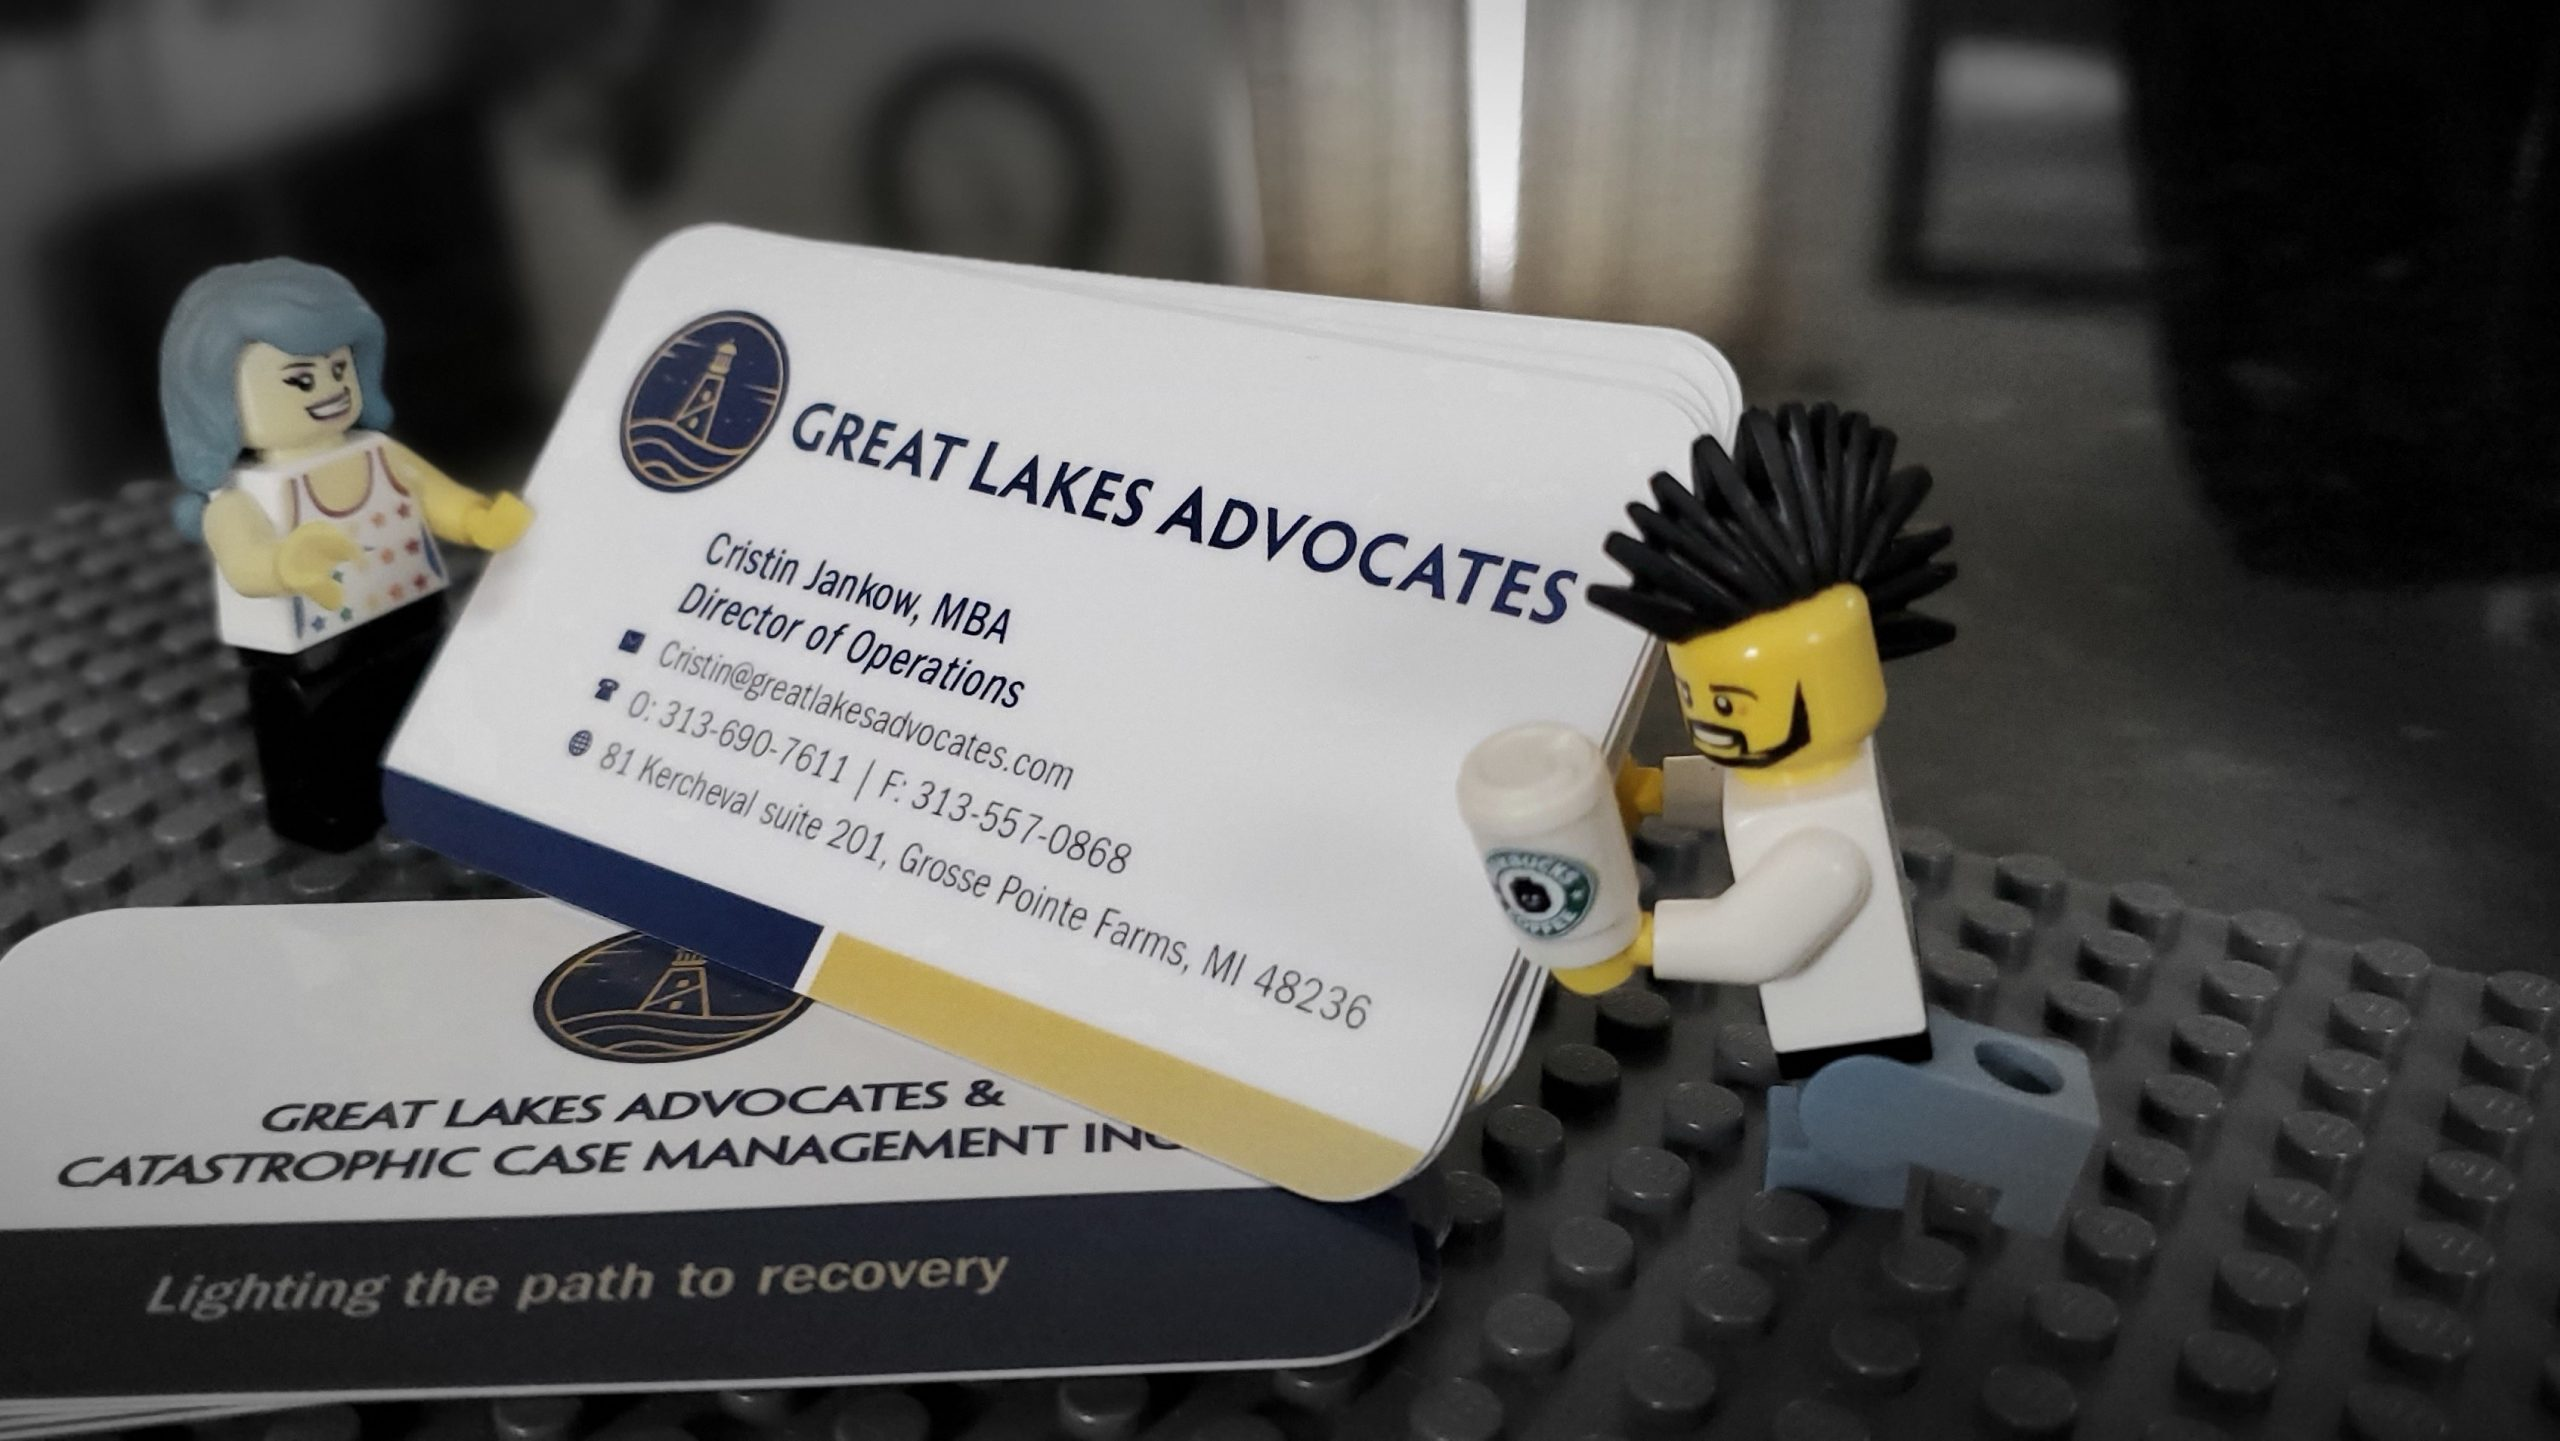 Great Lakes - Business Card Lego 02